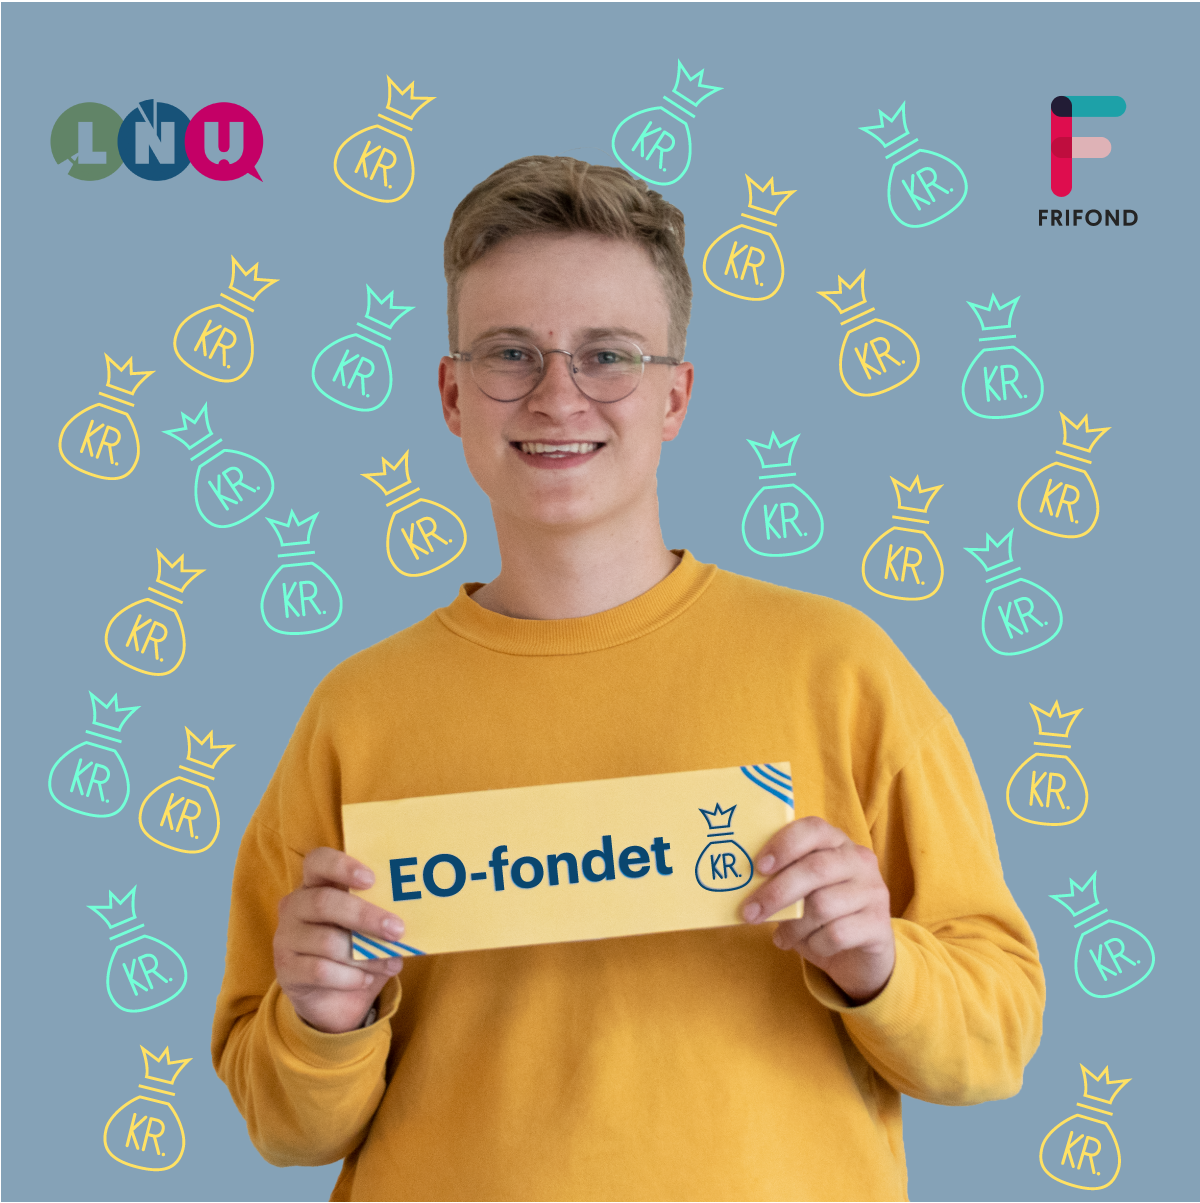 eo-fond-ting